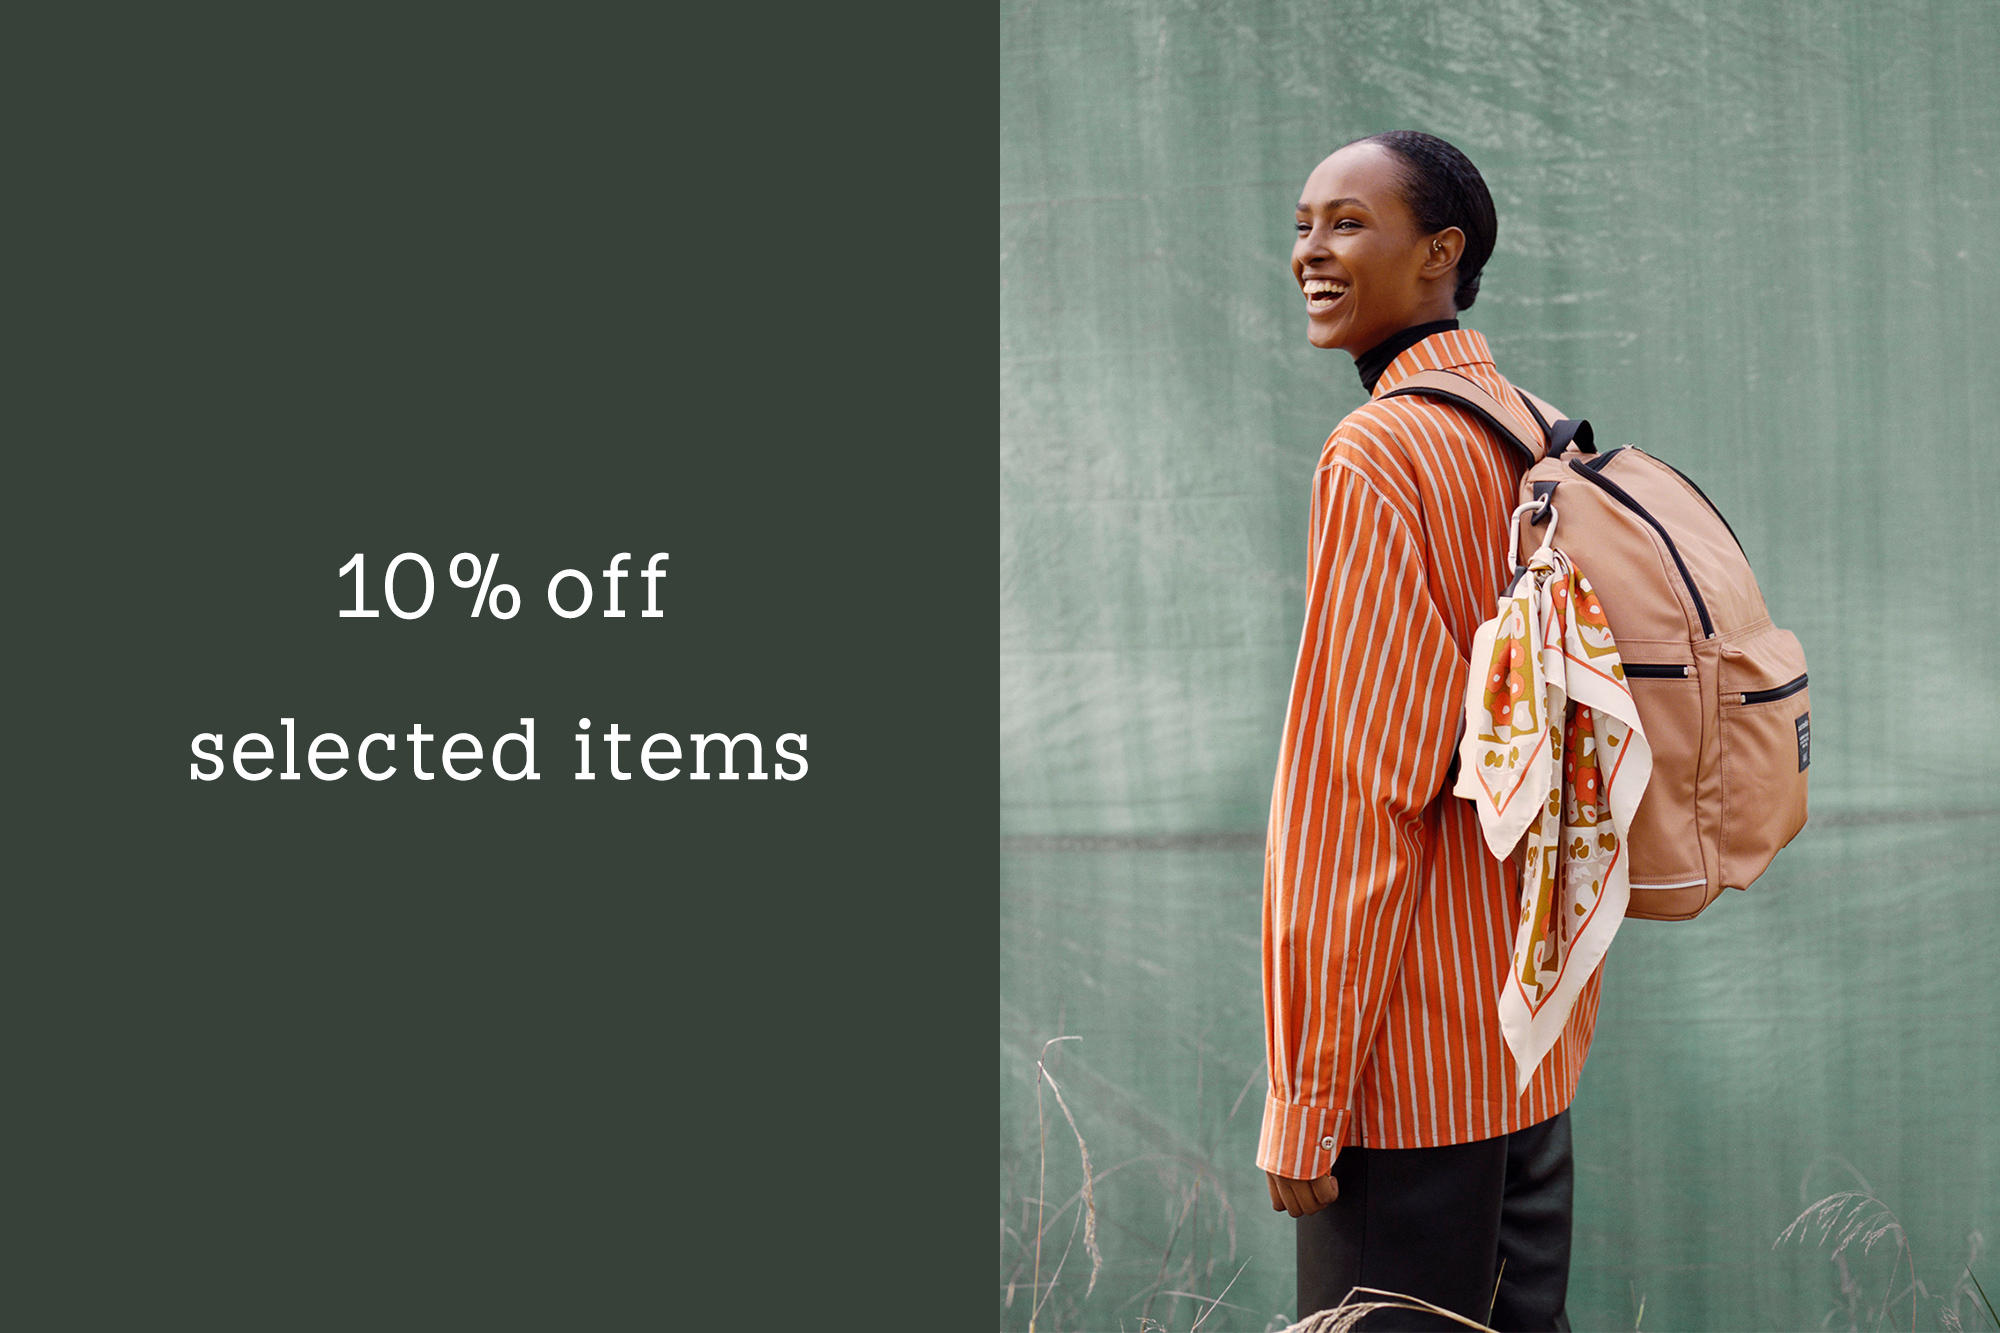 10.23- 10% off selected items